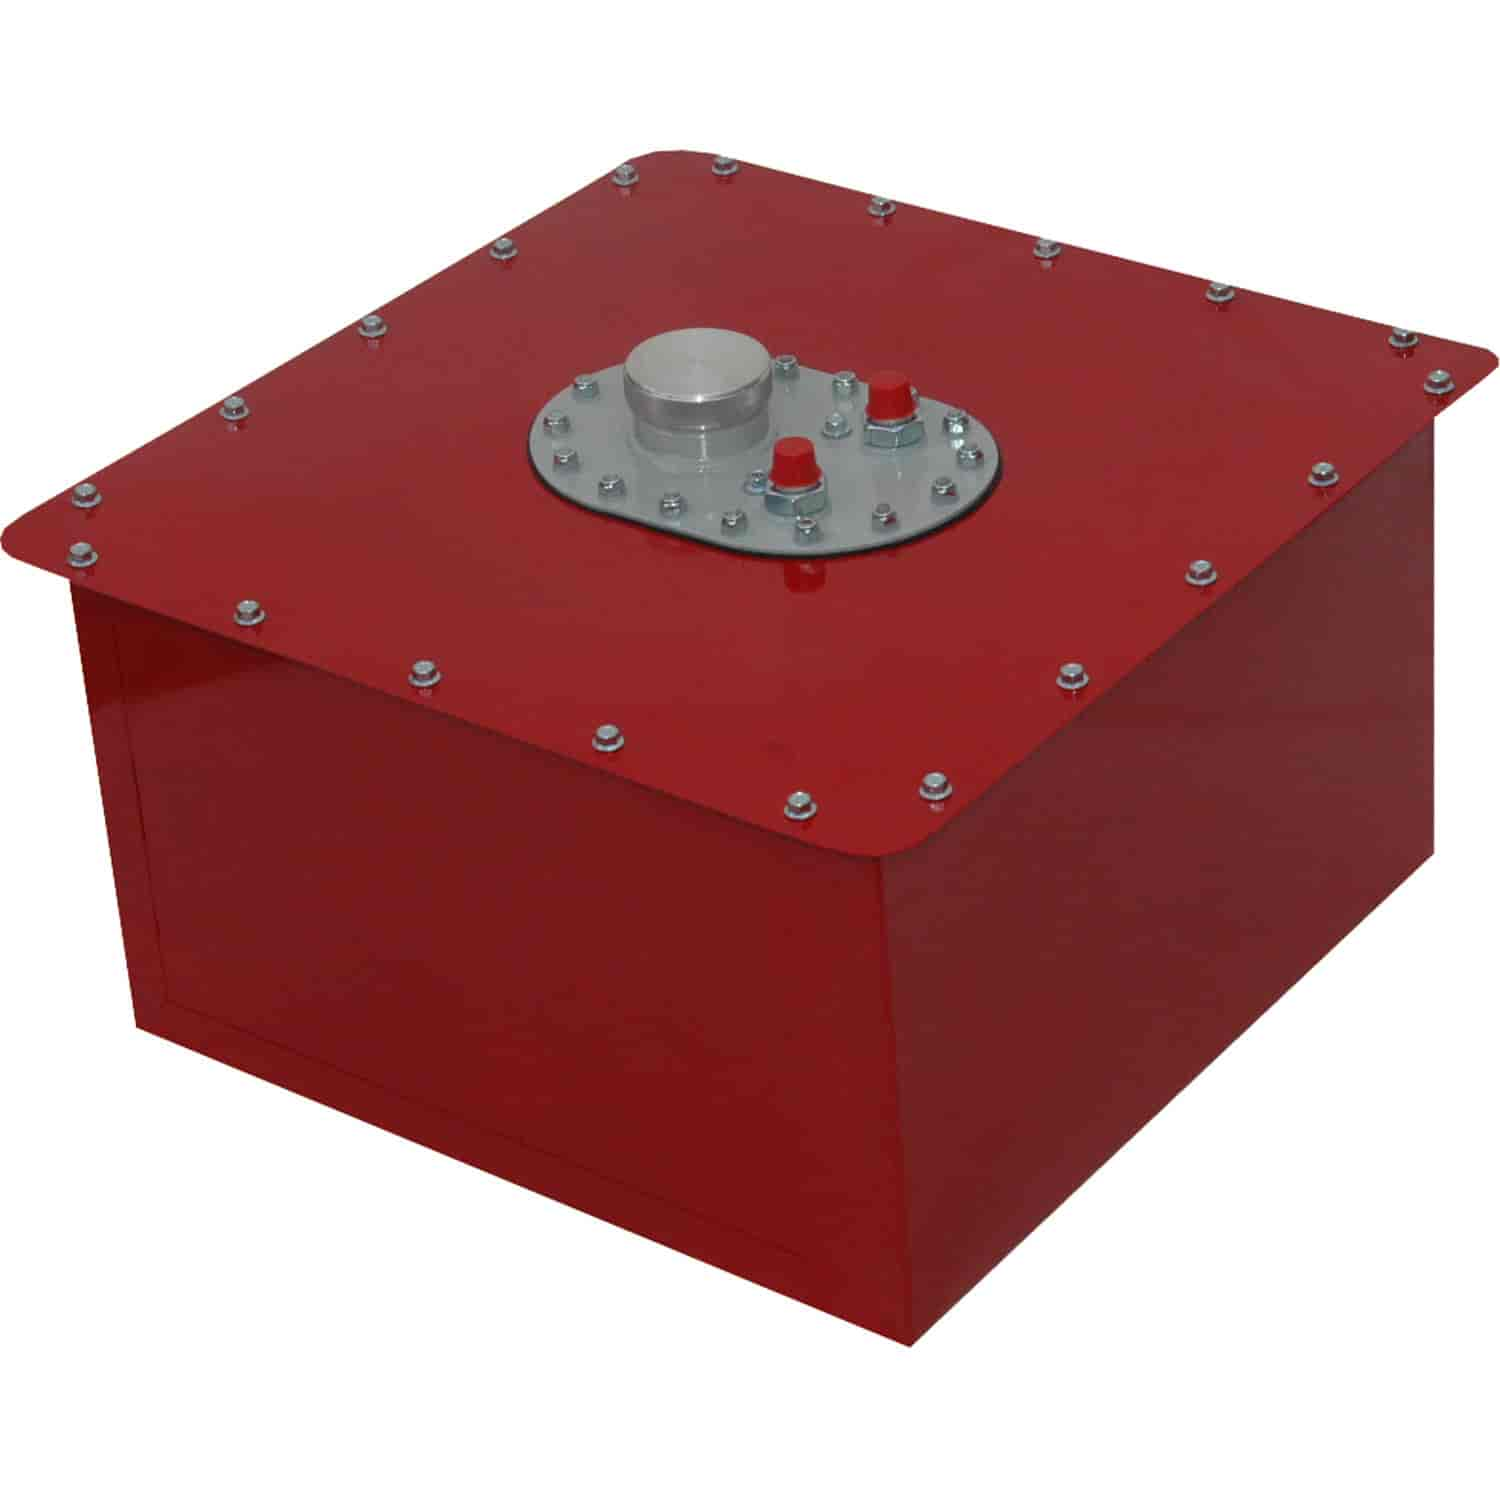 Rci 1122c Red Circle Track Fuel Cell Capacity 12 Gallons